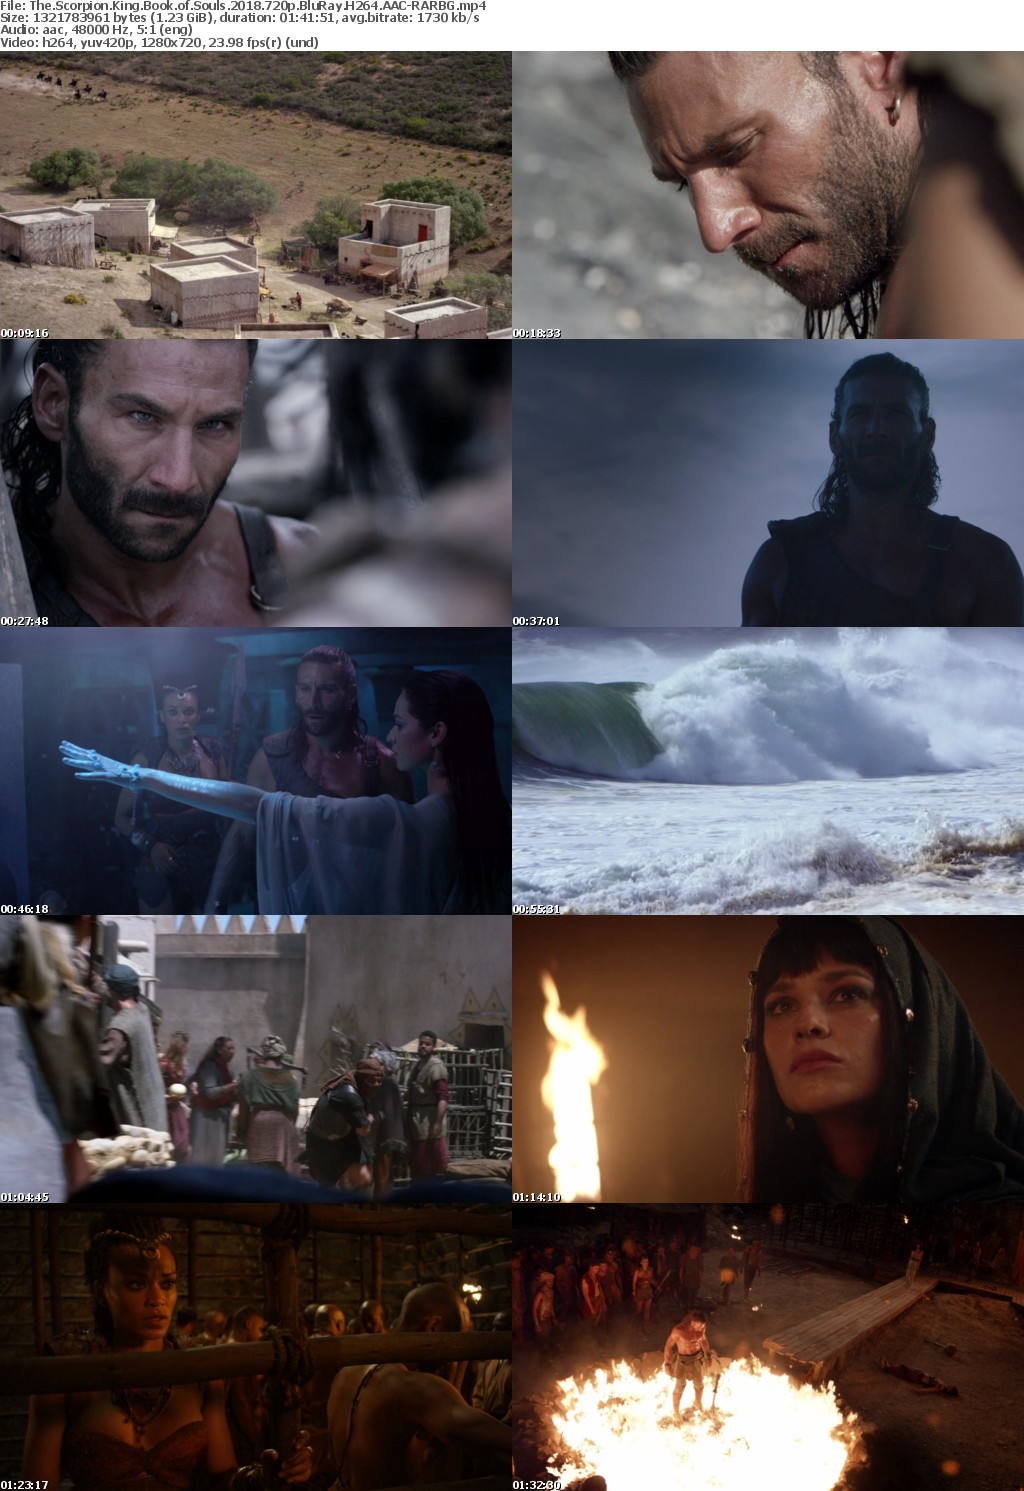 The Scorpion King Book of Souls (2018) 720p BluRay H264 AAC-RARBG